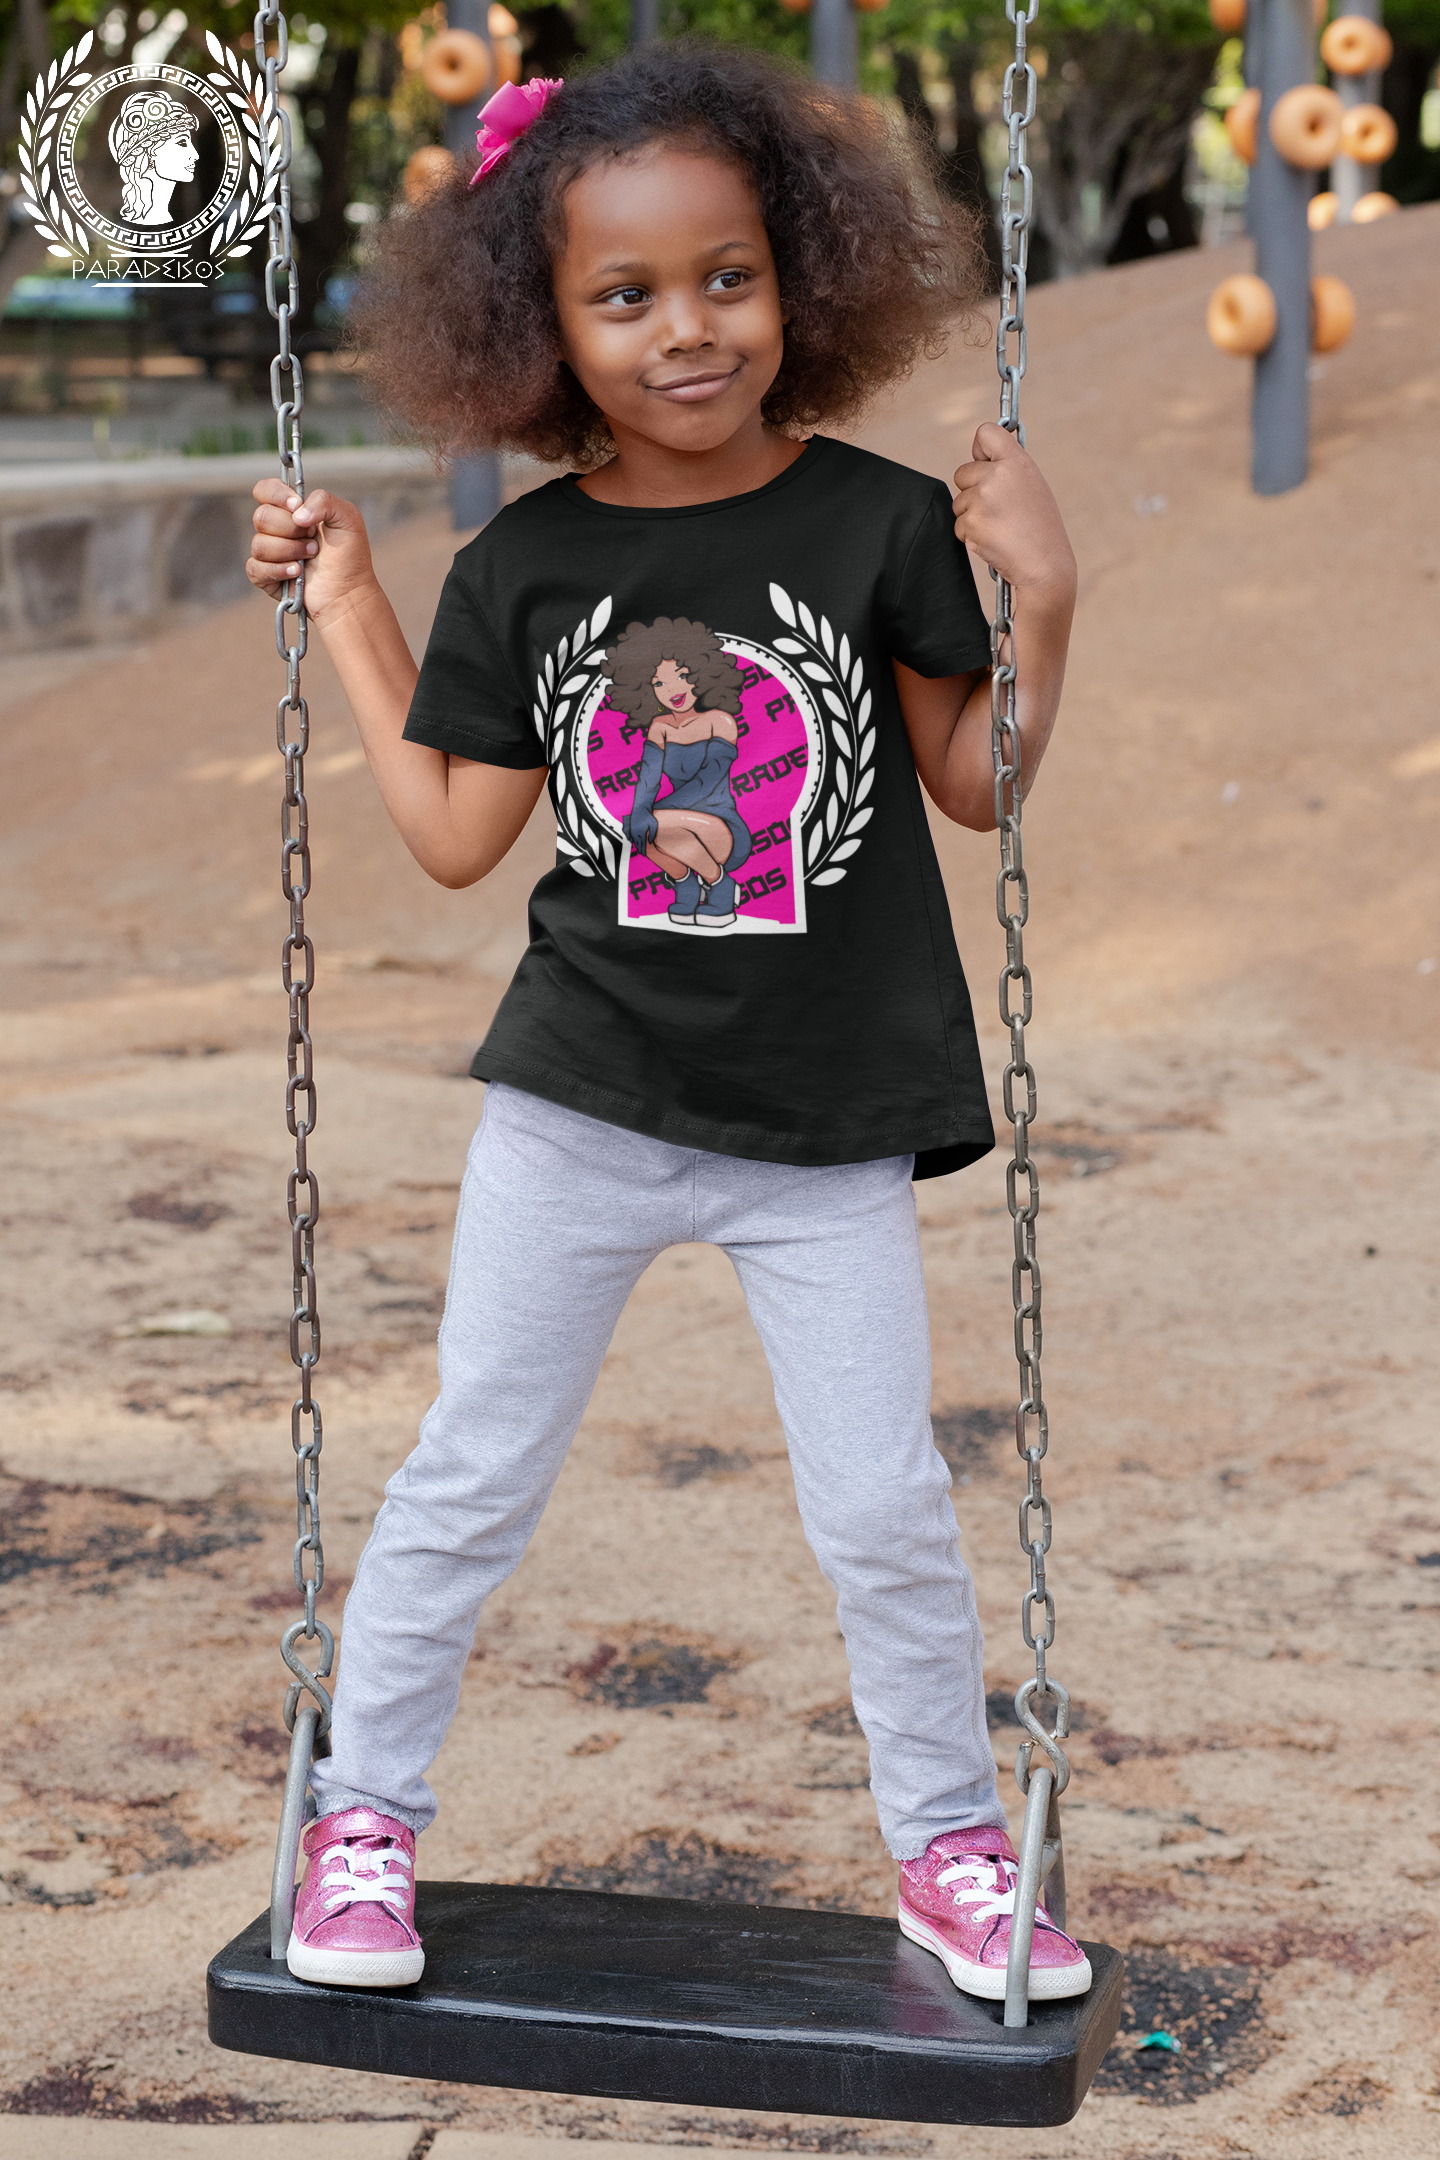 t-shirt-mockup-of-a-playful-girl-standin